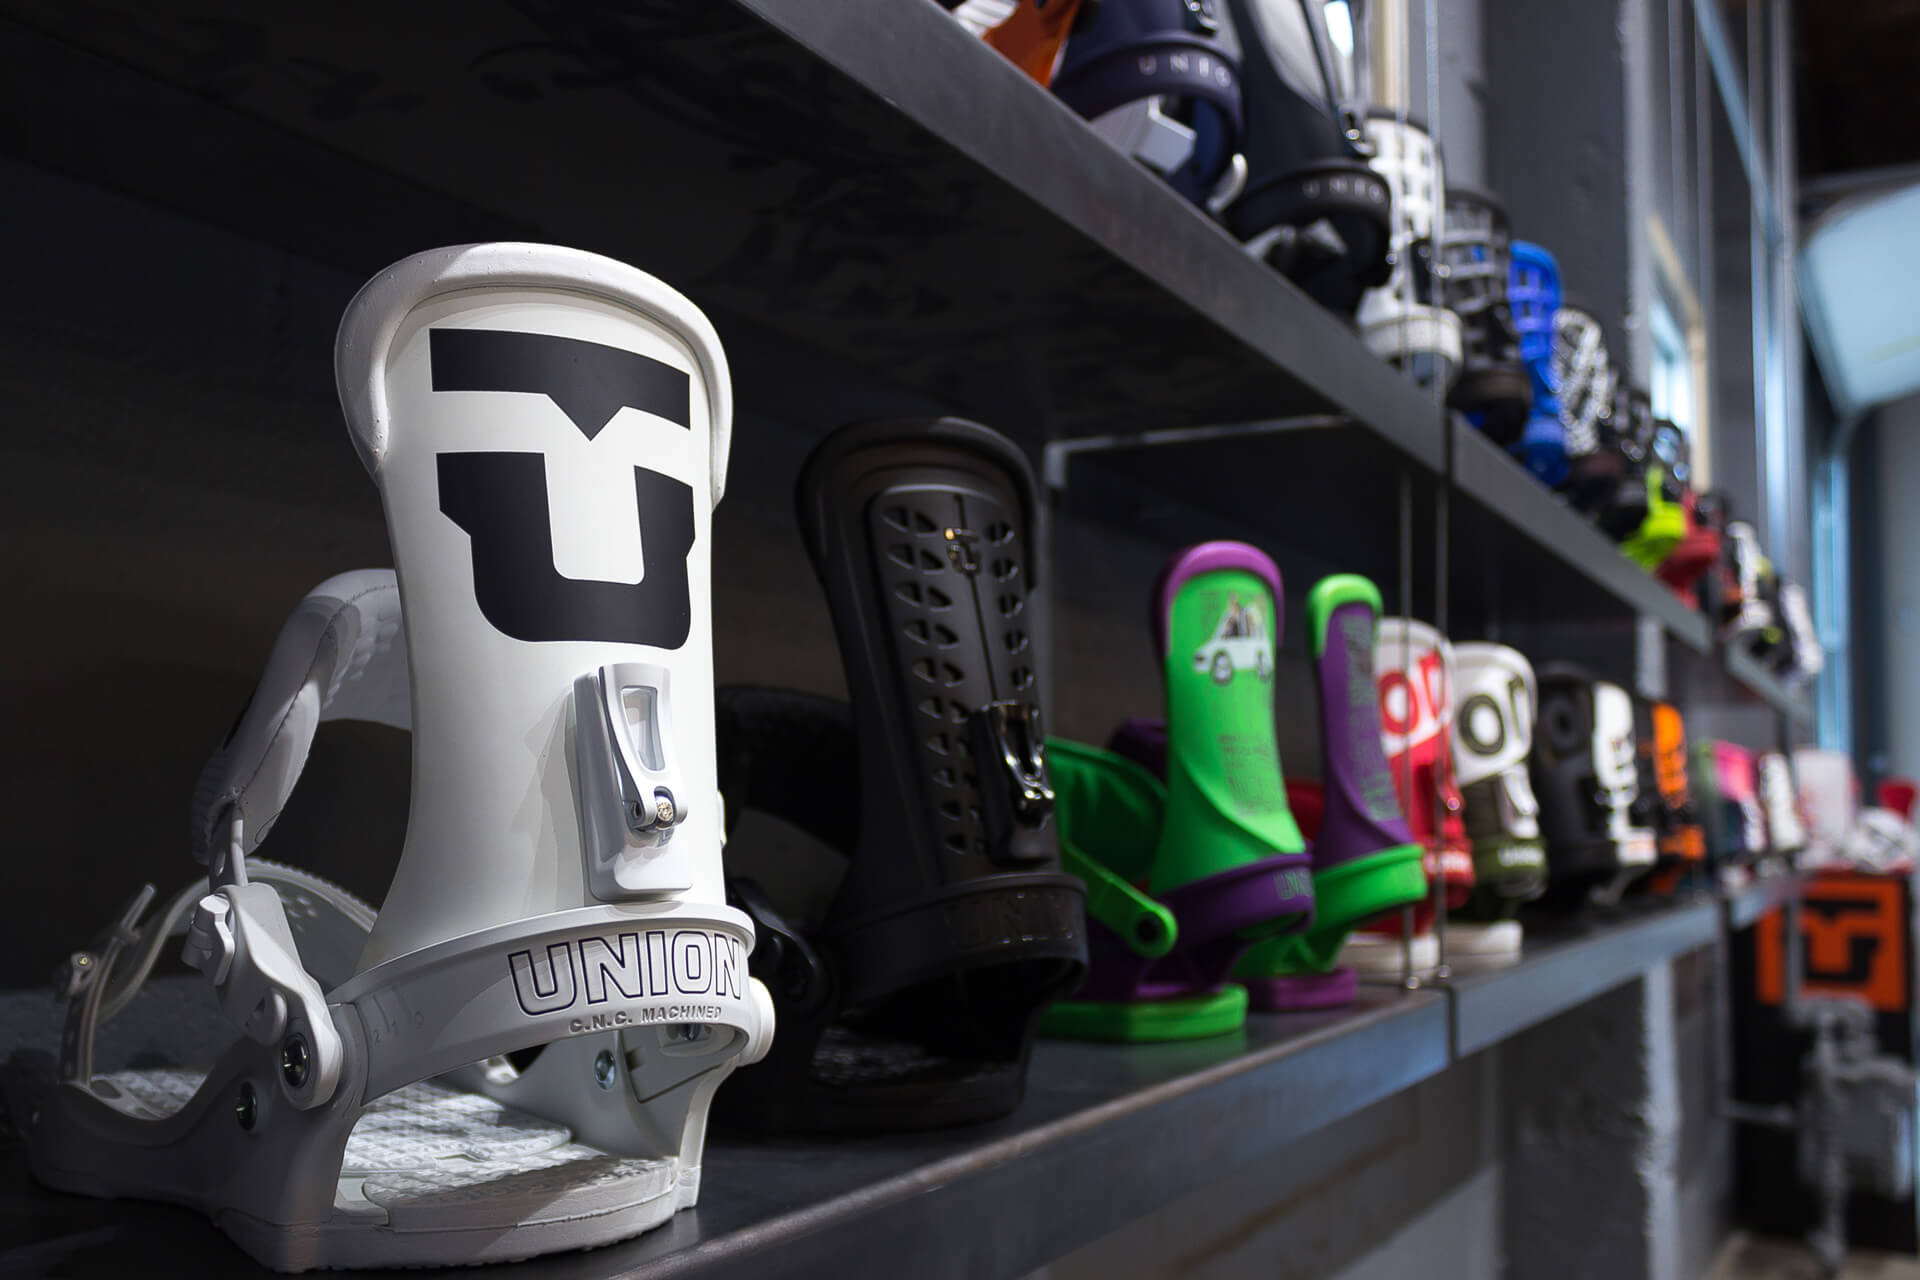 Photo of our new Union Bindings on the wall of our retail space located in Seattle.